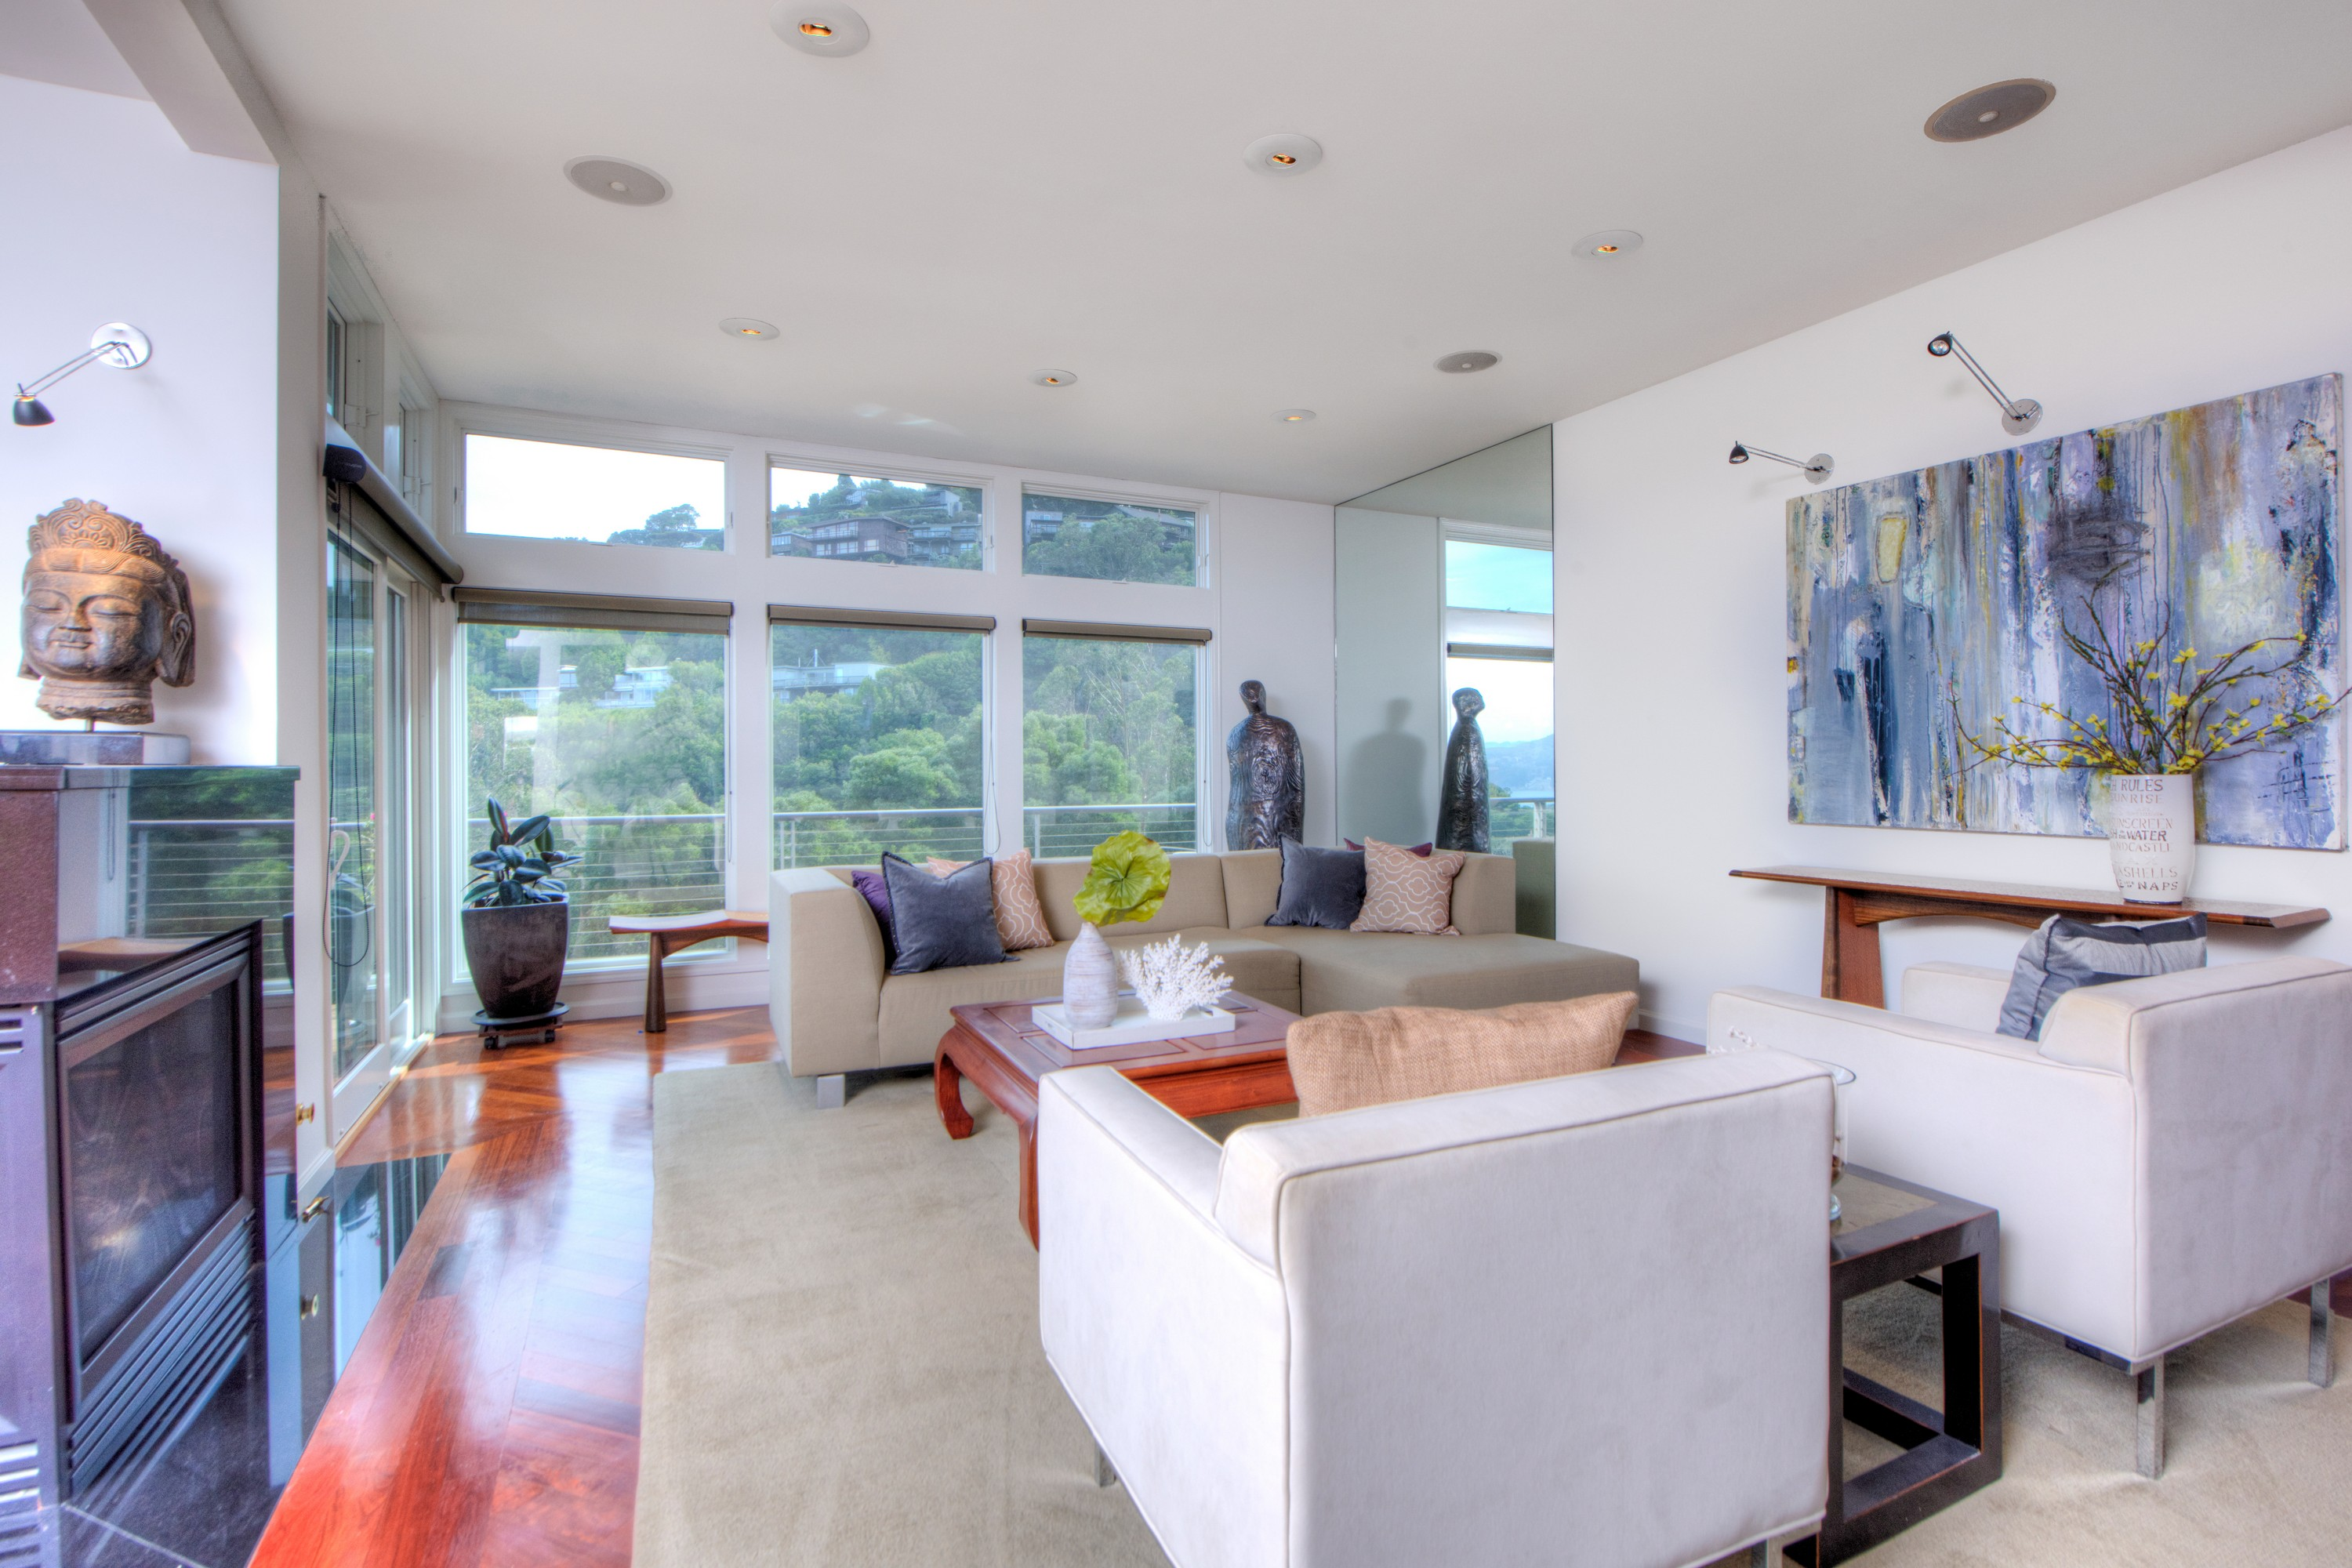 Property For Sale at Modern Retreat with Bay Views and Detached Rental Studio/Artist's Loft